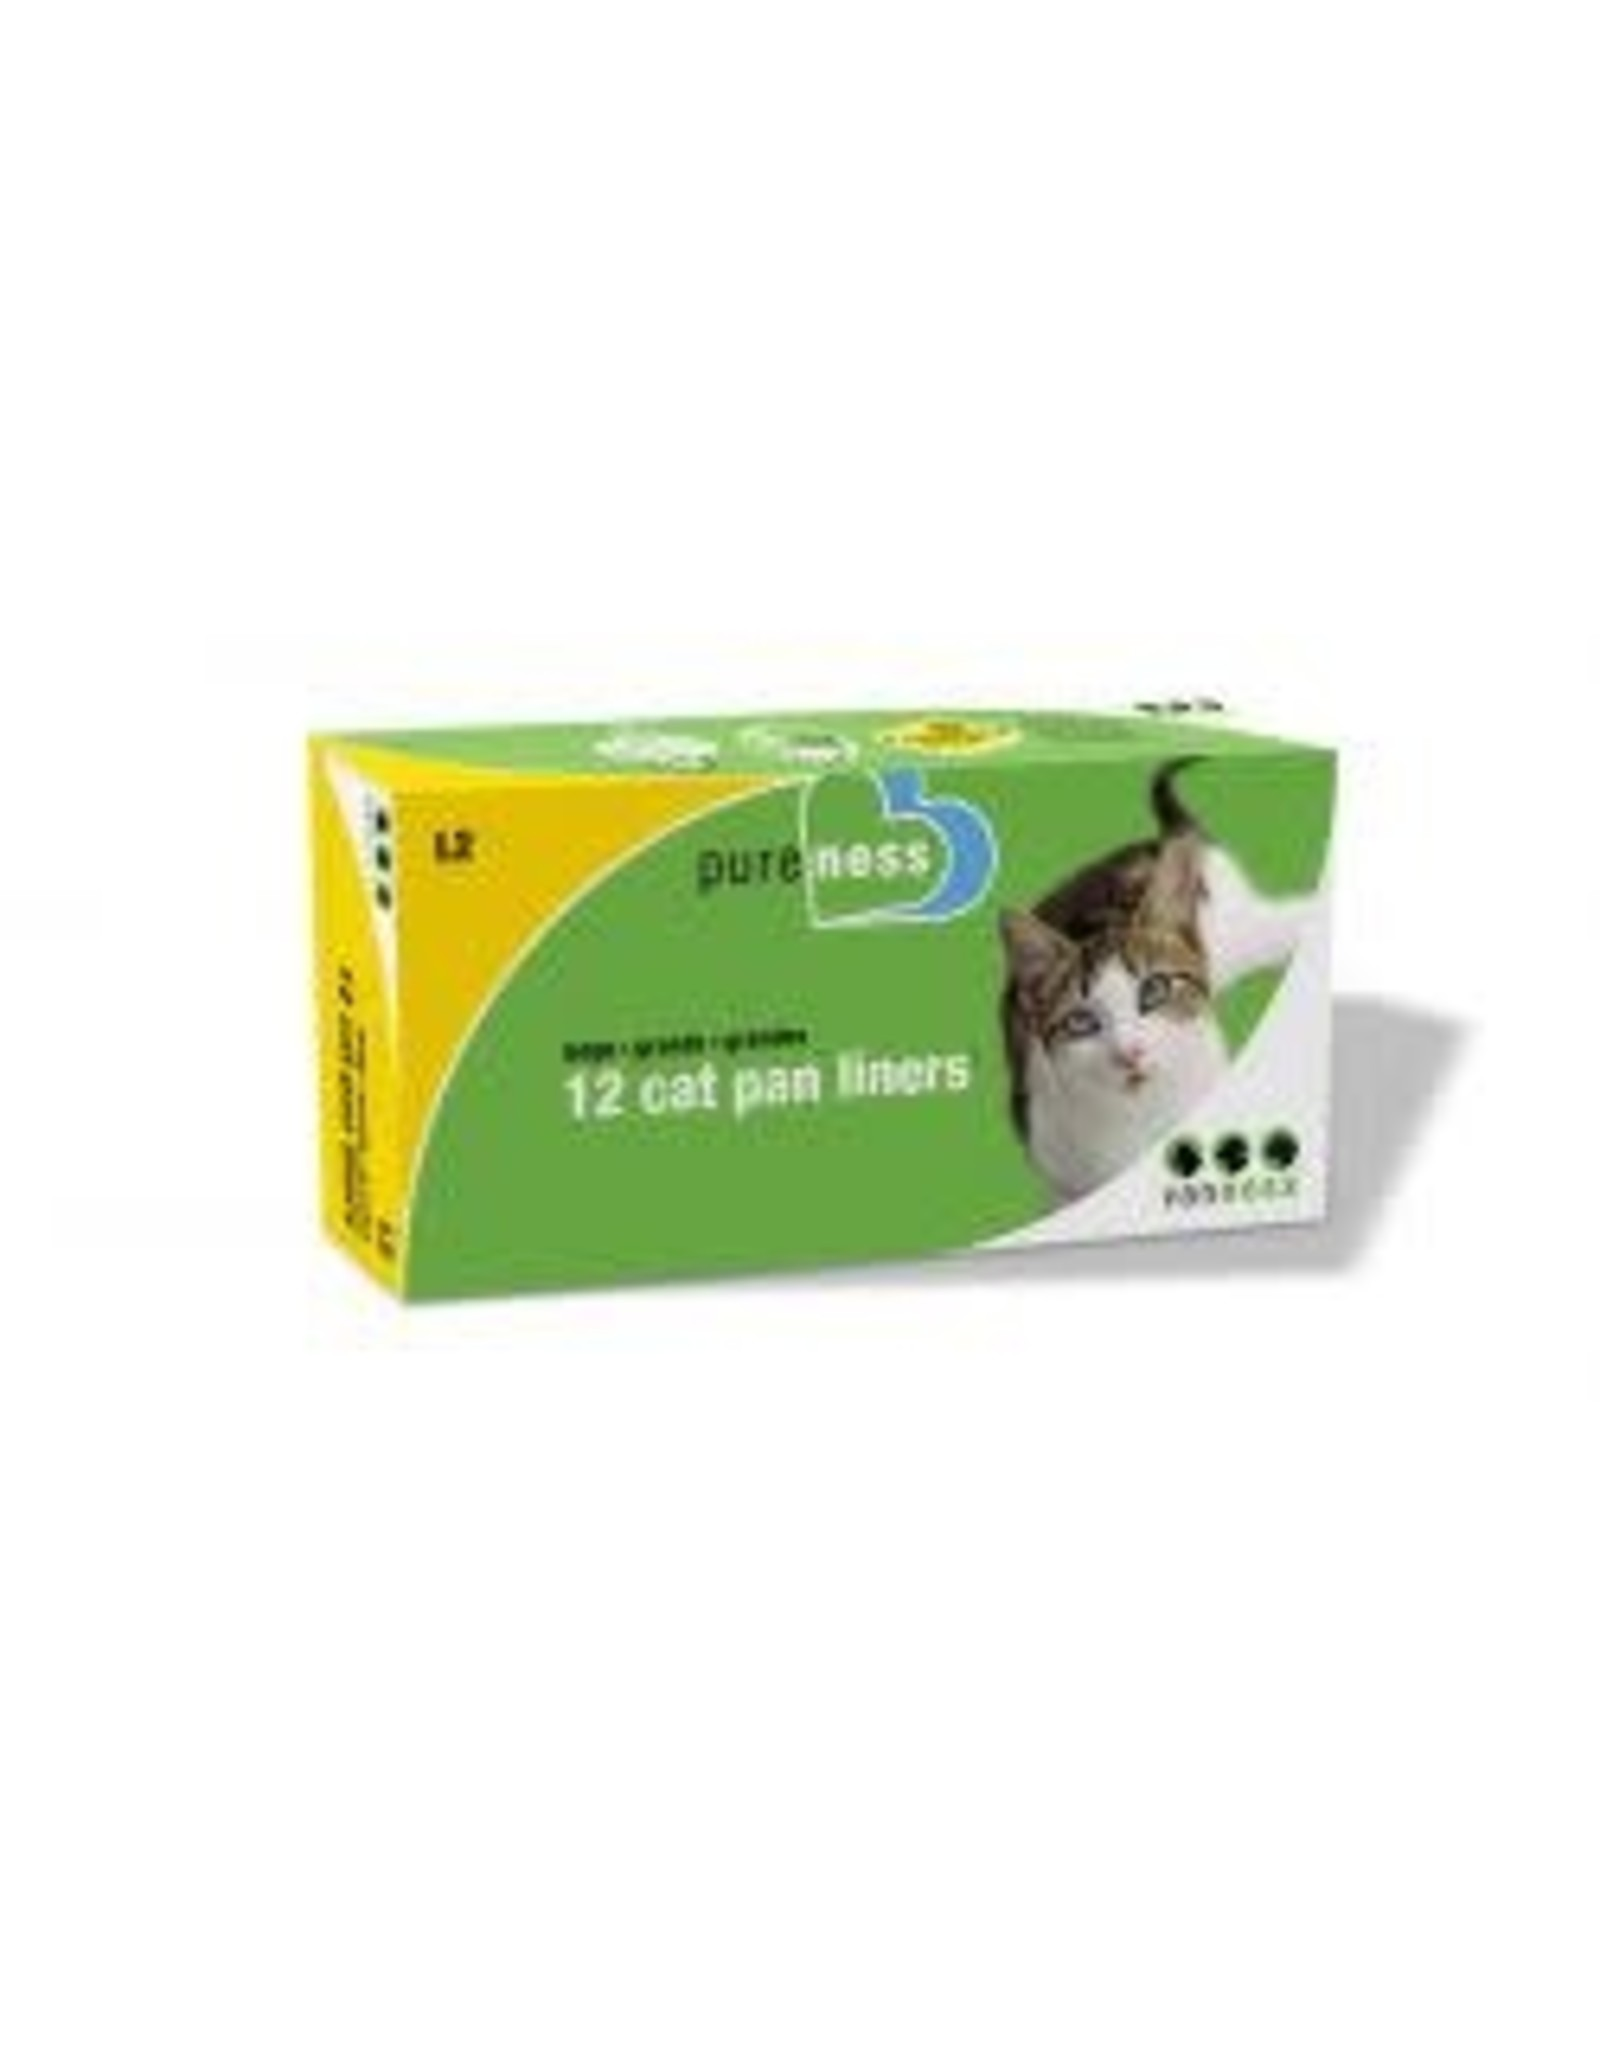 Van Ness Van Ness Litter Tray Liners Large 12 Pack